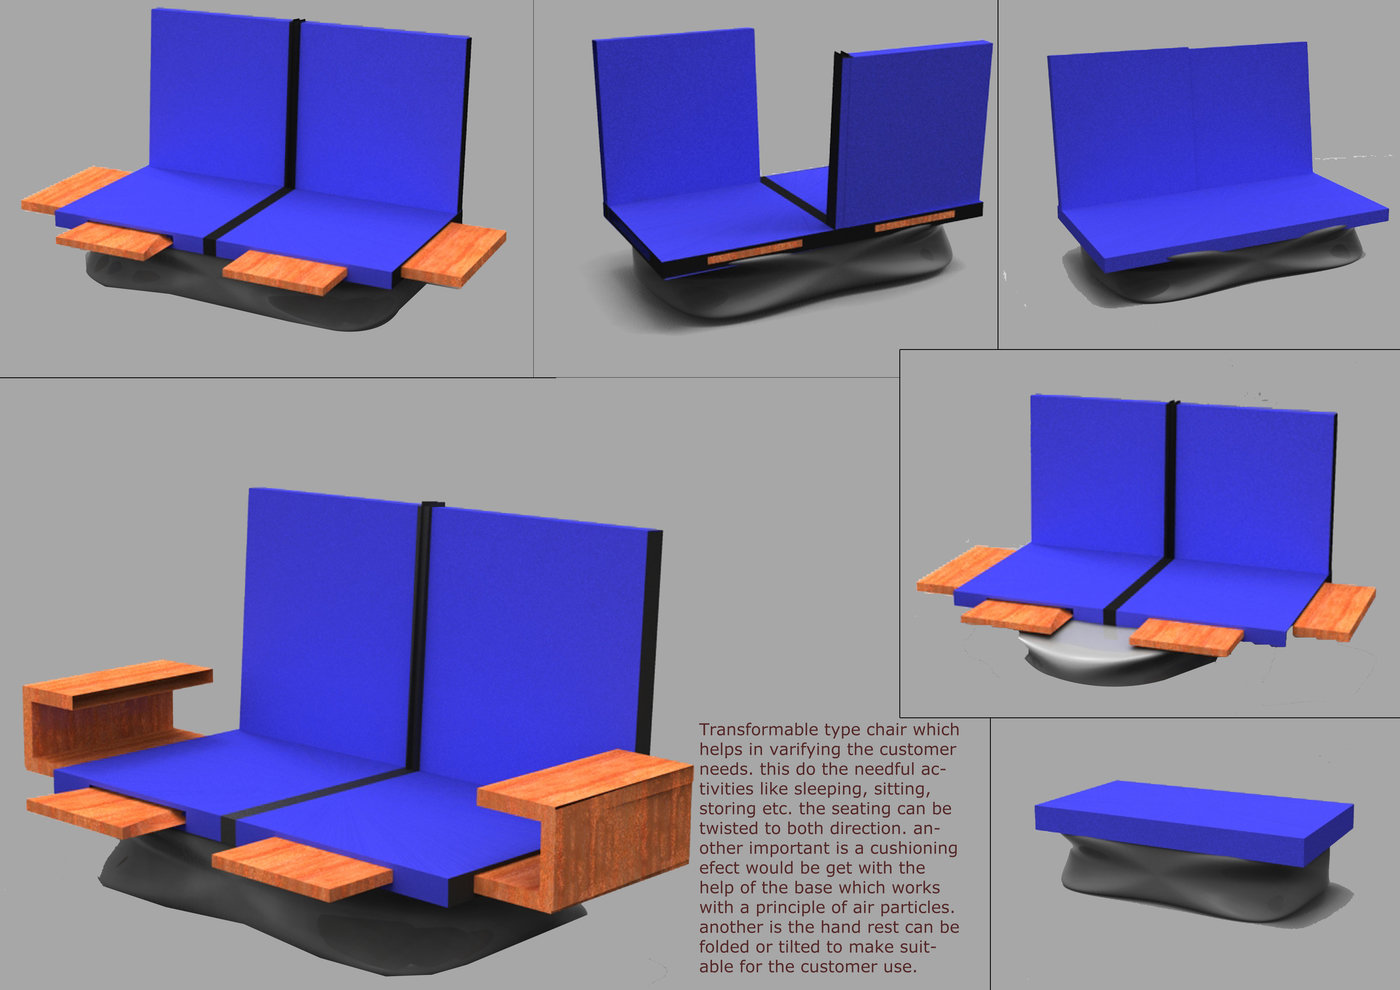 Concept Transformable Furniture   Modern Transformable Furniture Helps In  Providing Our Satisfying Needs In A Comfortable Way.